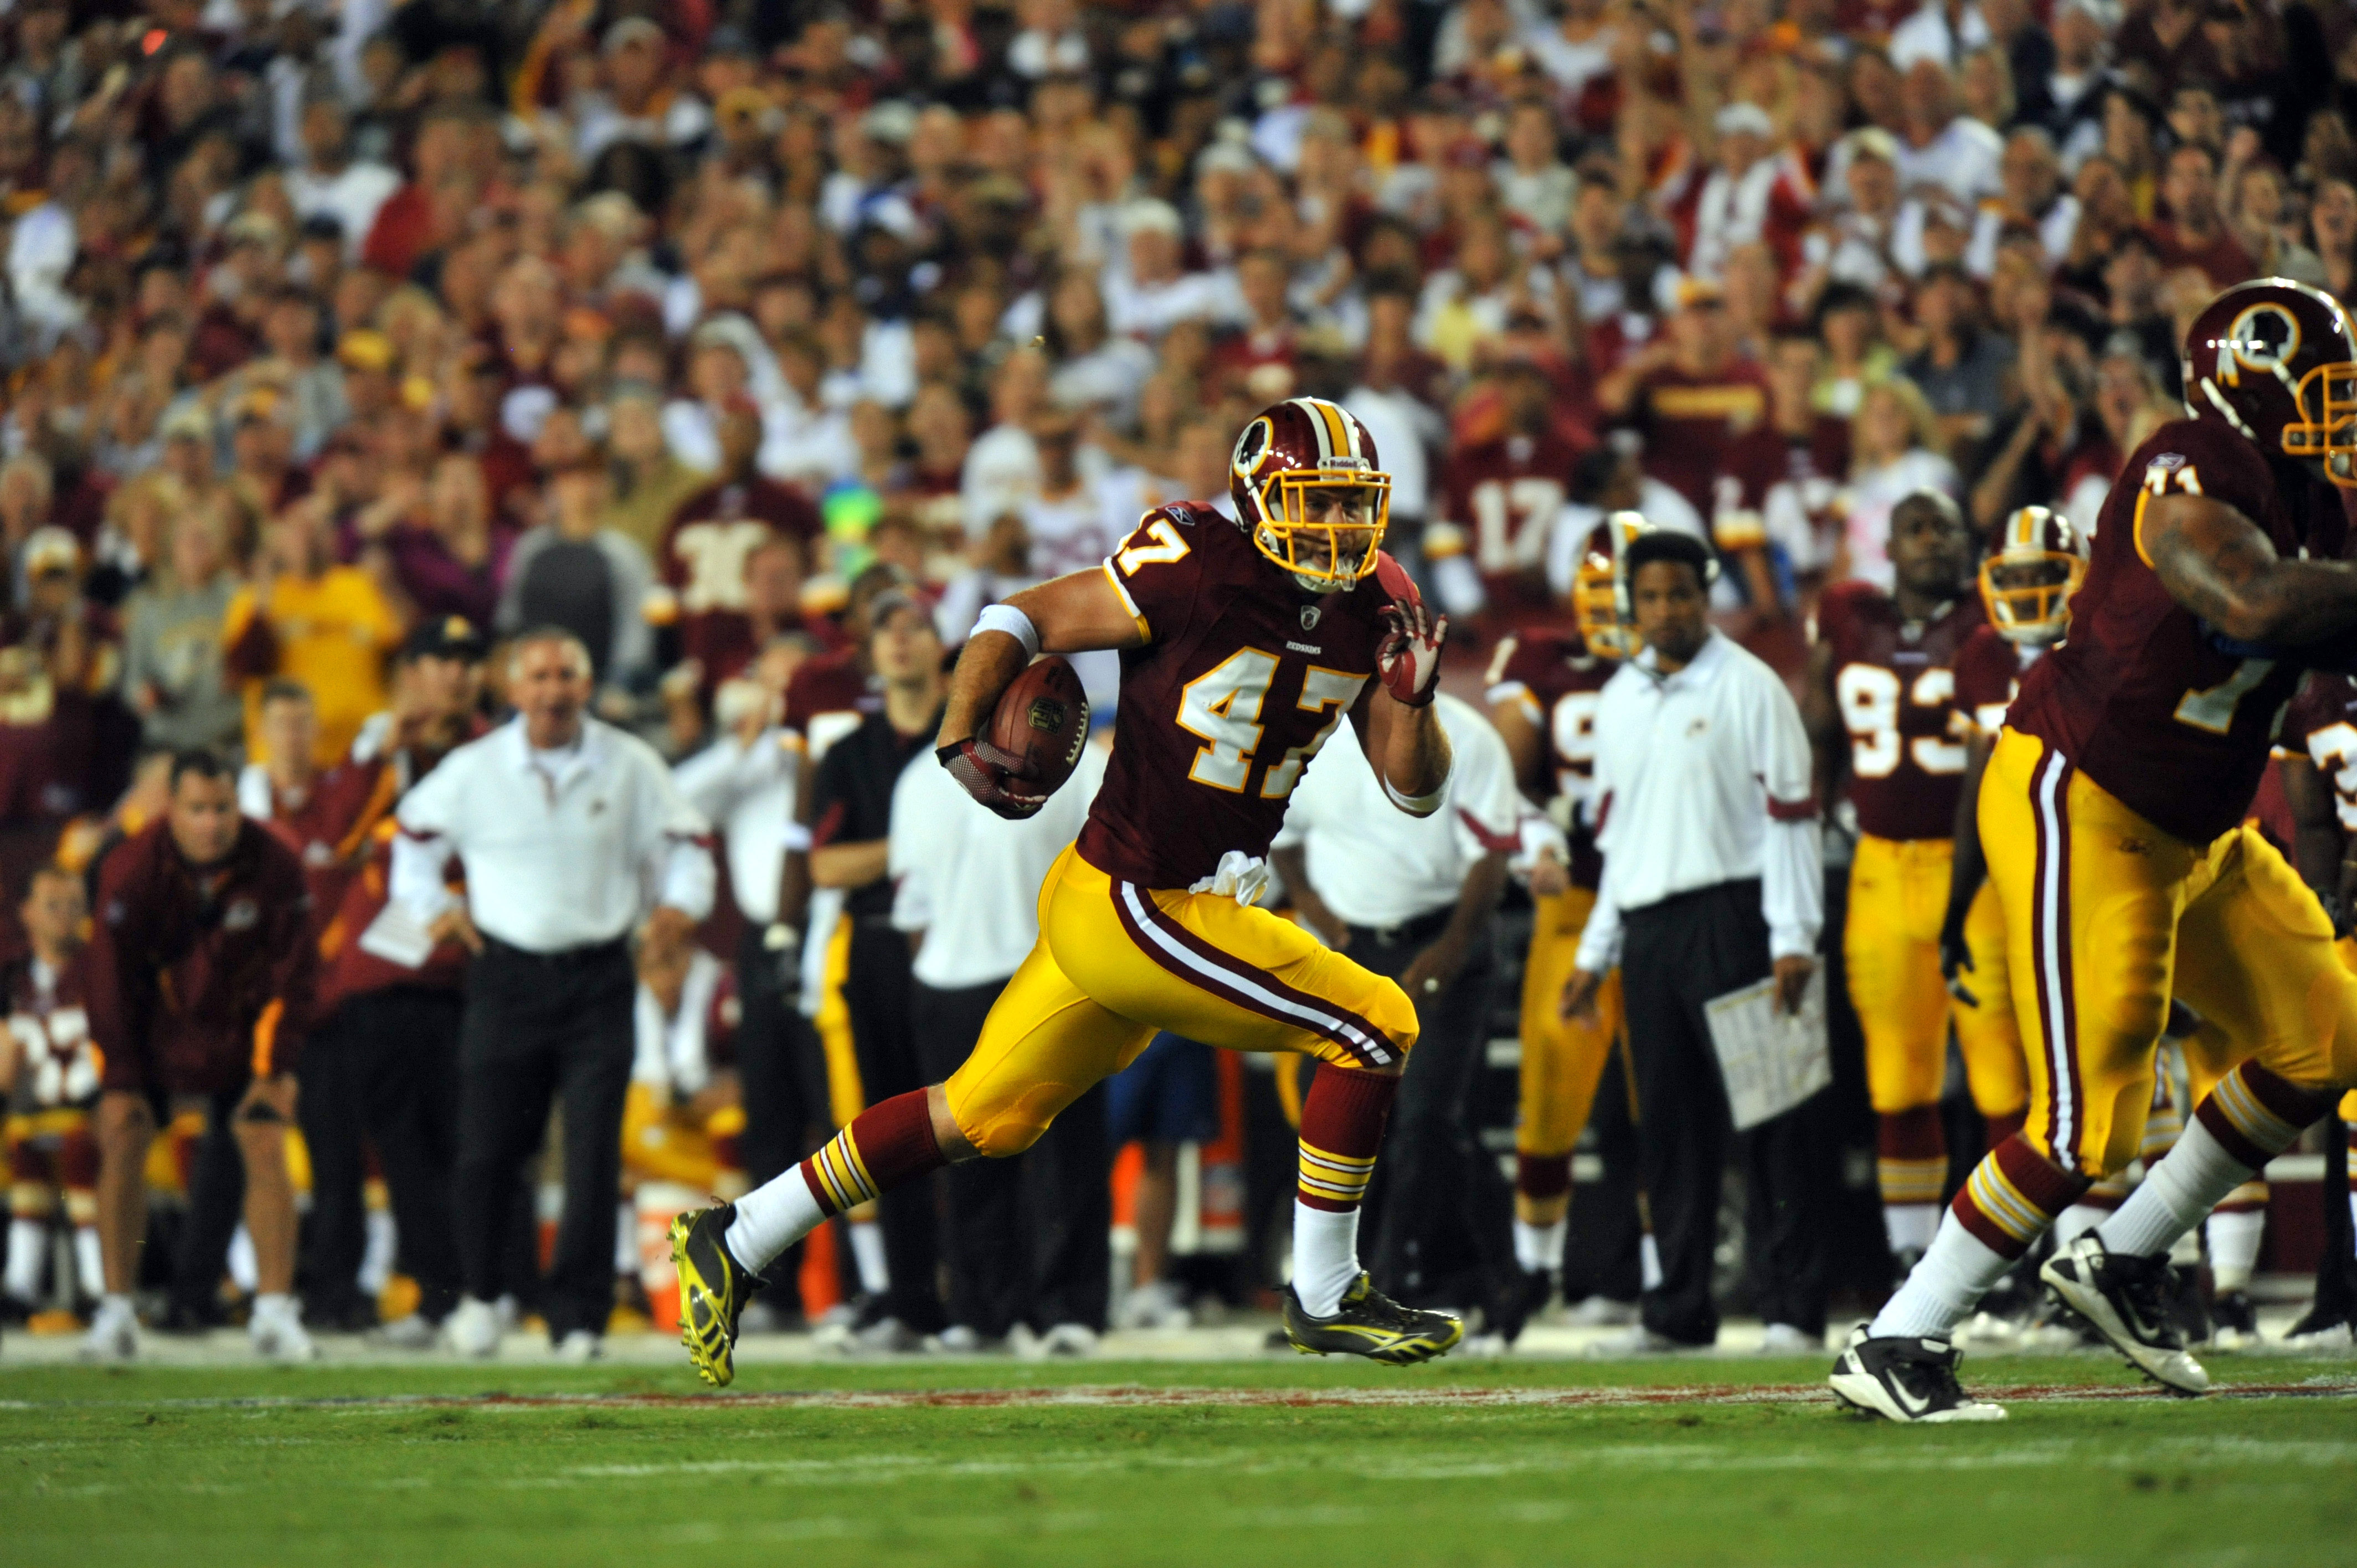 LANDOVER - SEPTEMBER 12:  Chris Cooley #47 of the Washington Redskins runs the ball during the NFL season opener against the Dallas Cowboys at FedExField on September 12, 2010 in Landover, Maryland.  (Photo by Larry French/Getty Images)